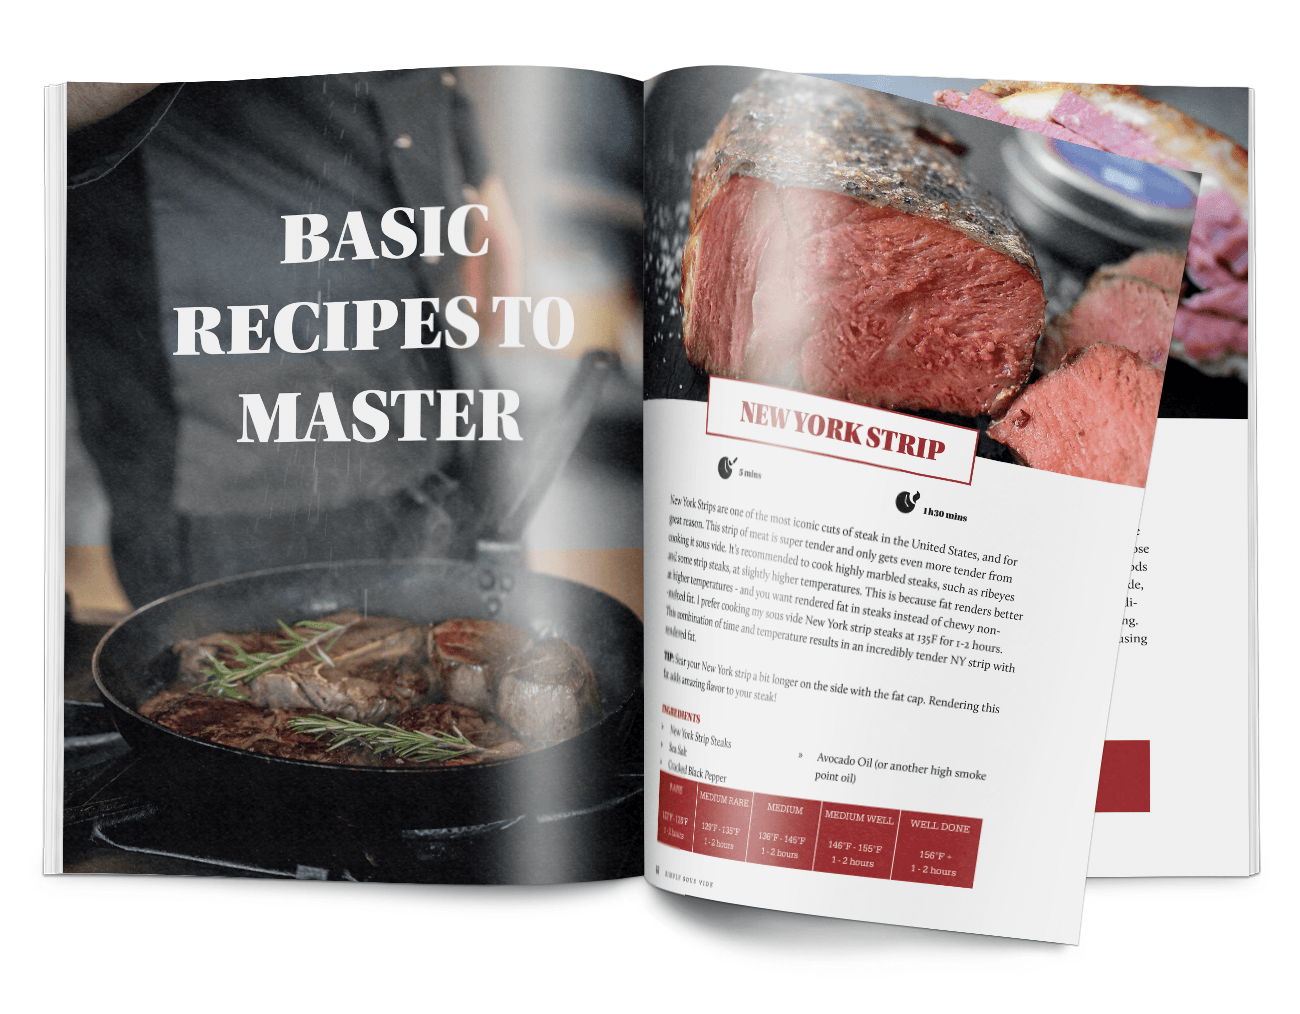 recipes from the book